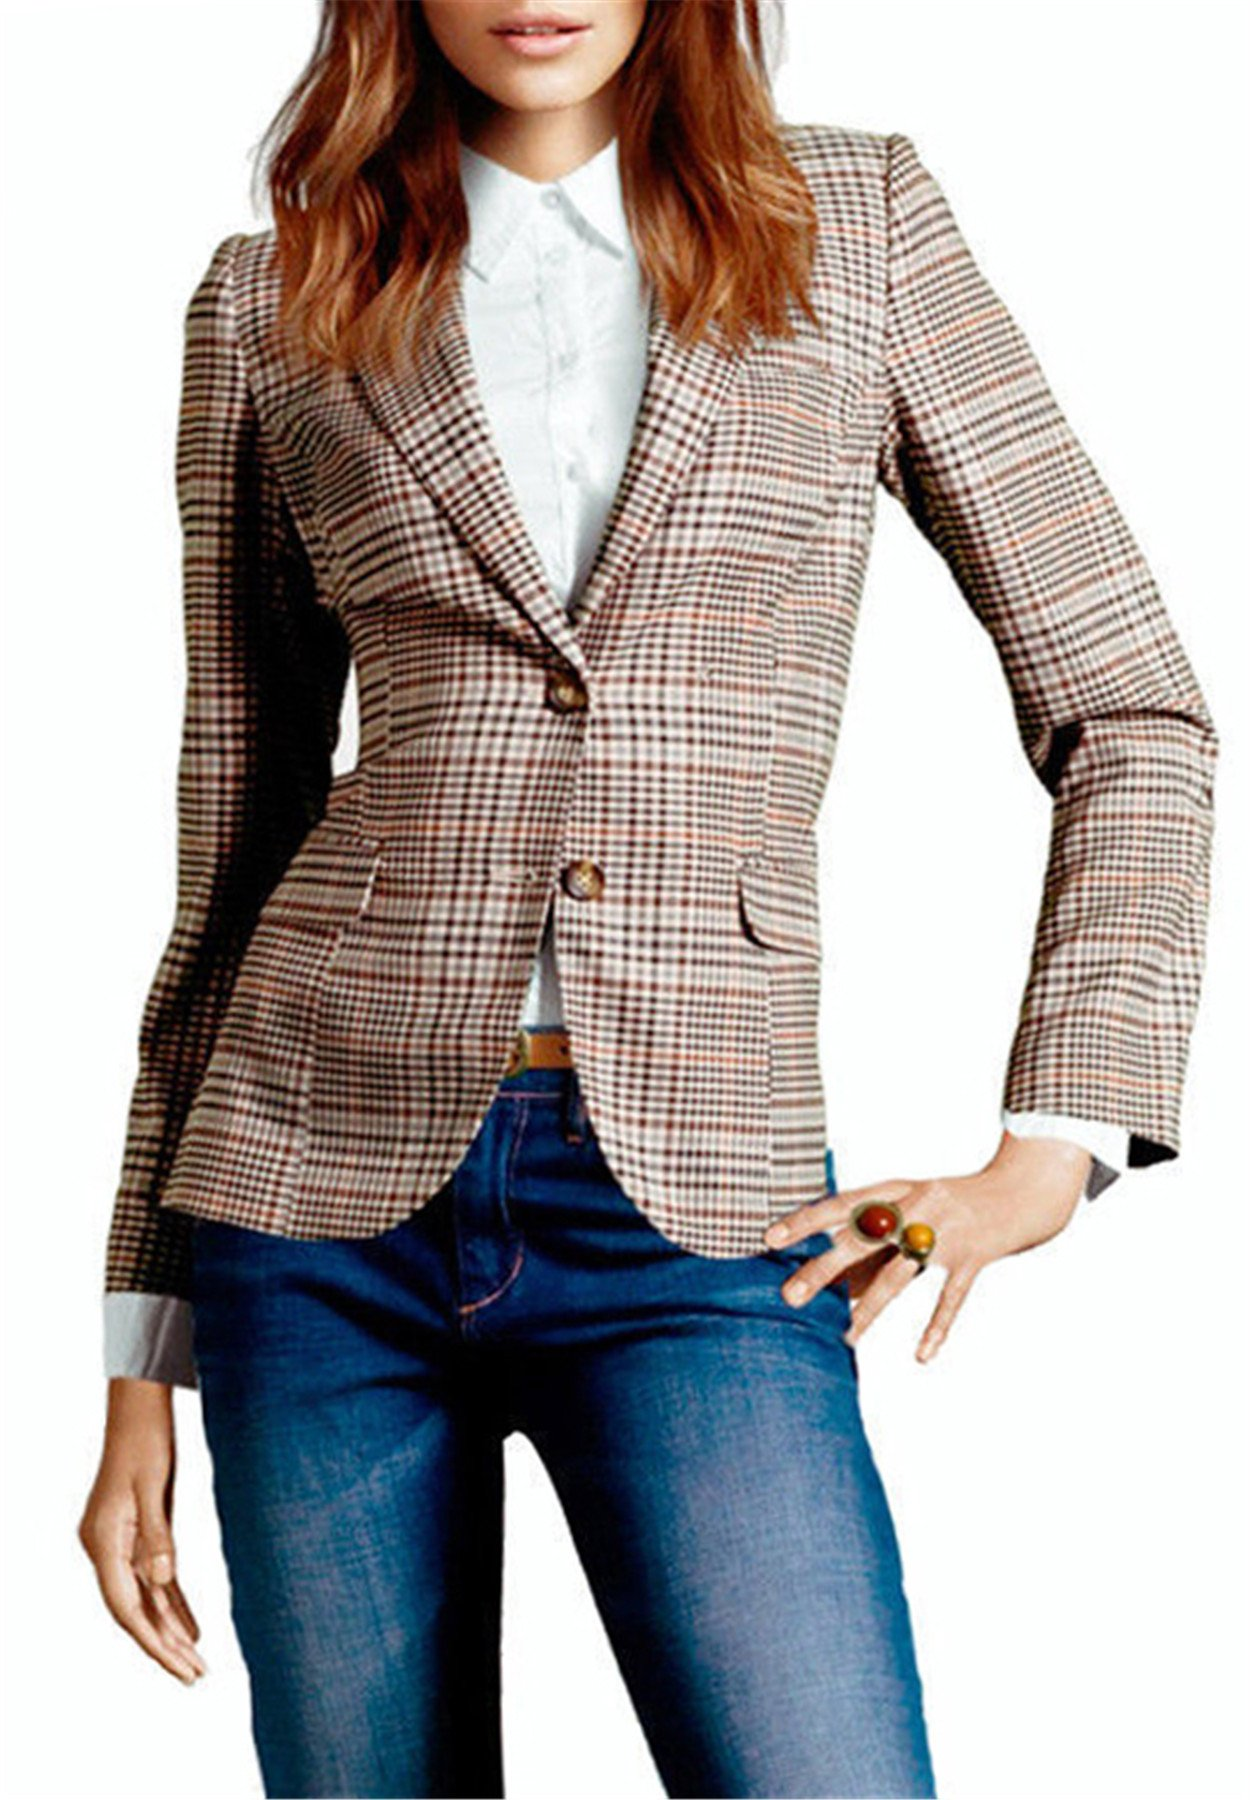 My Wonderful World Blazer Coat Jacket Mww Women Long Sleeves OL Business Plaid Formal Blazer US 6